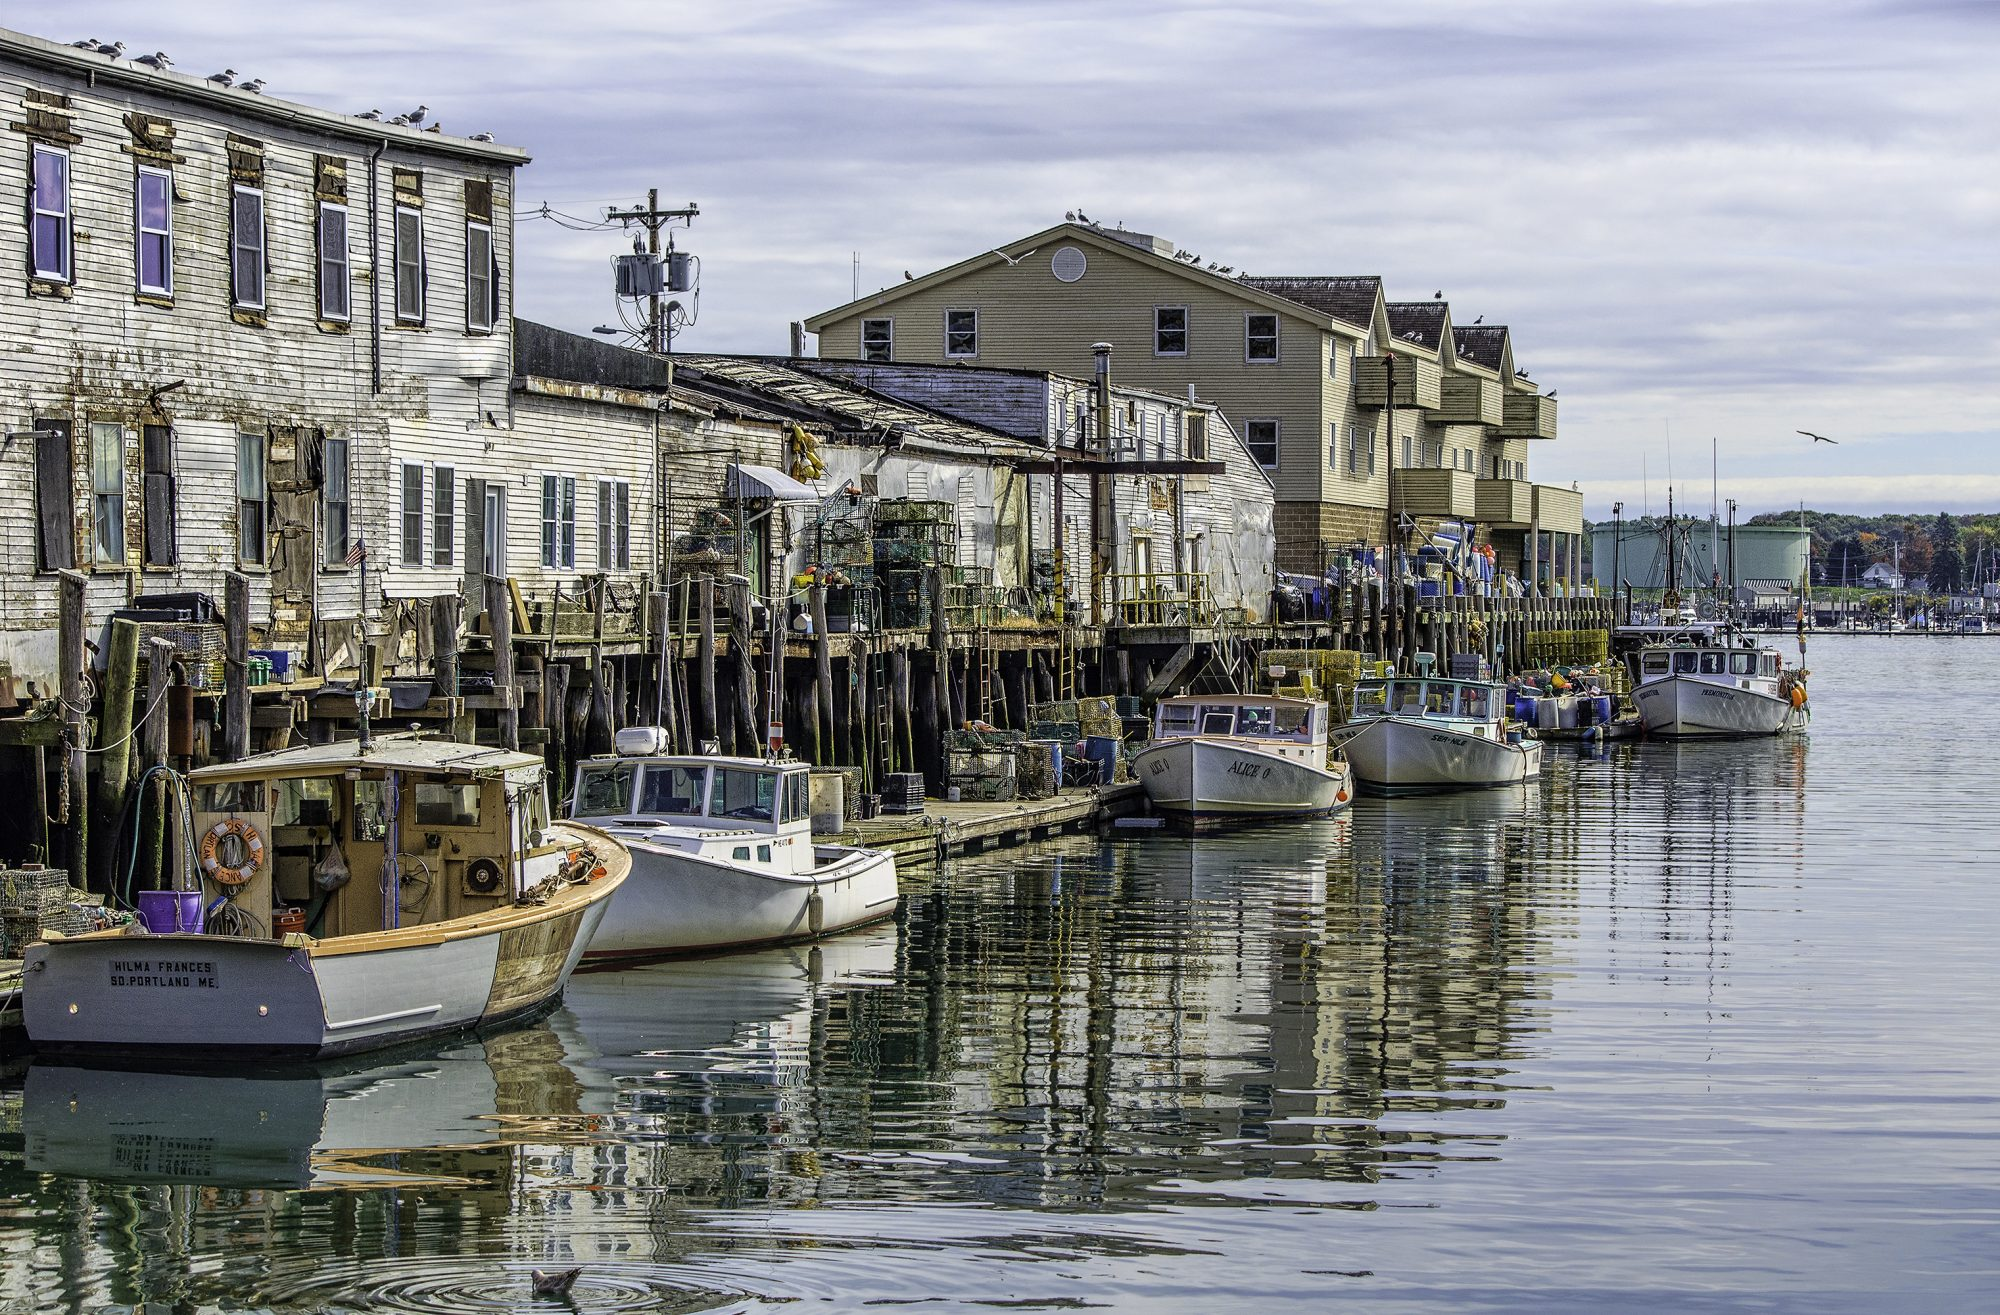 best-places-to-live-2021-2022-us-news-report: Beautiful area by the sea in Portland, Maine